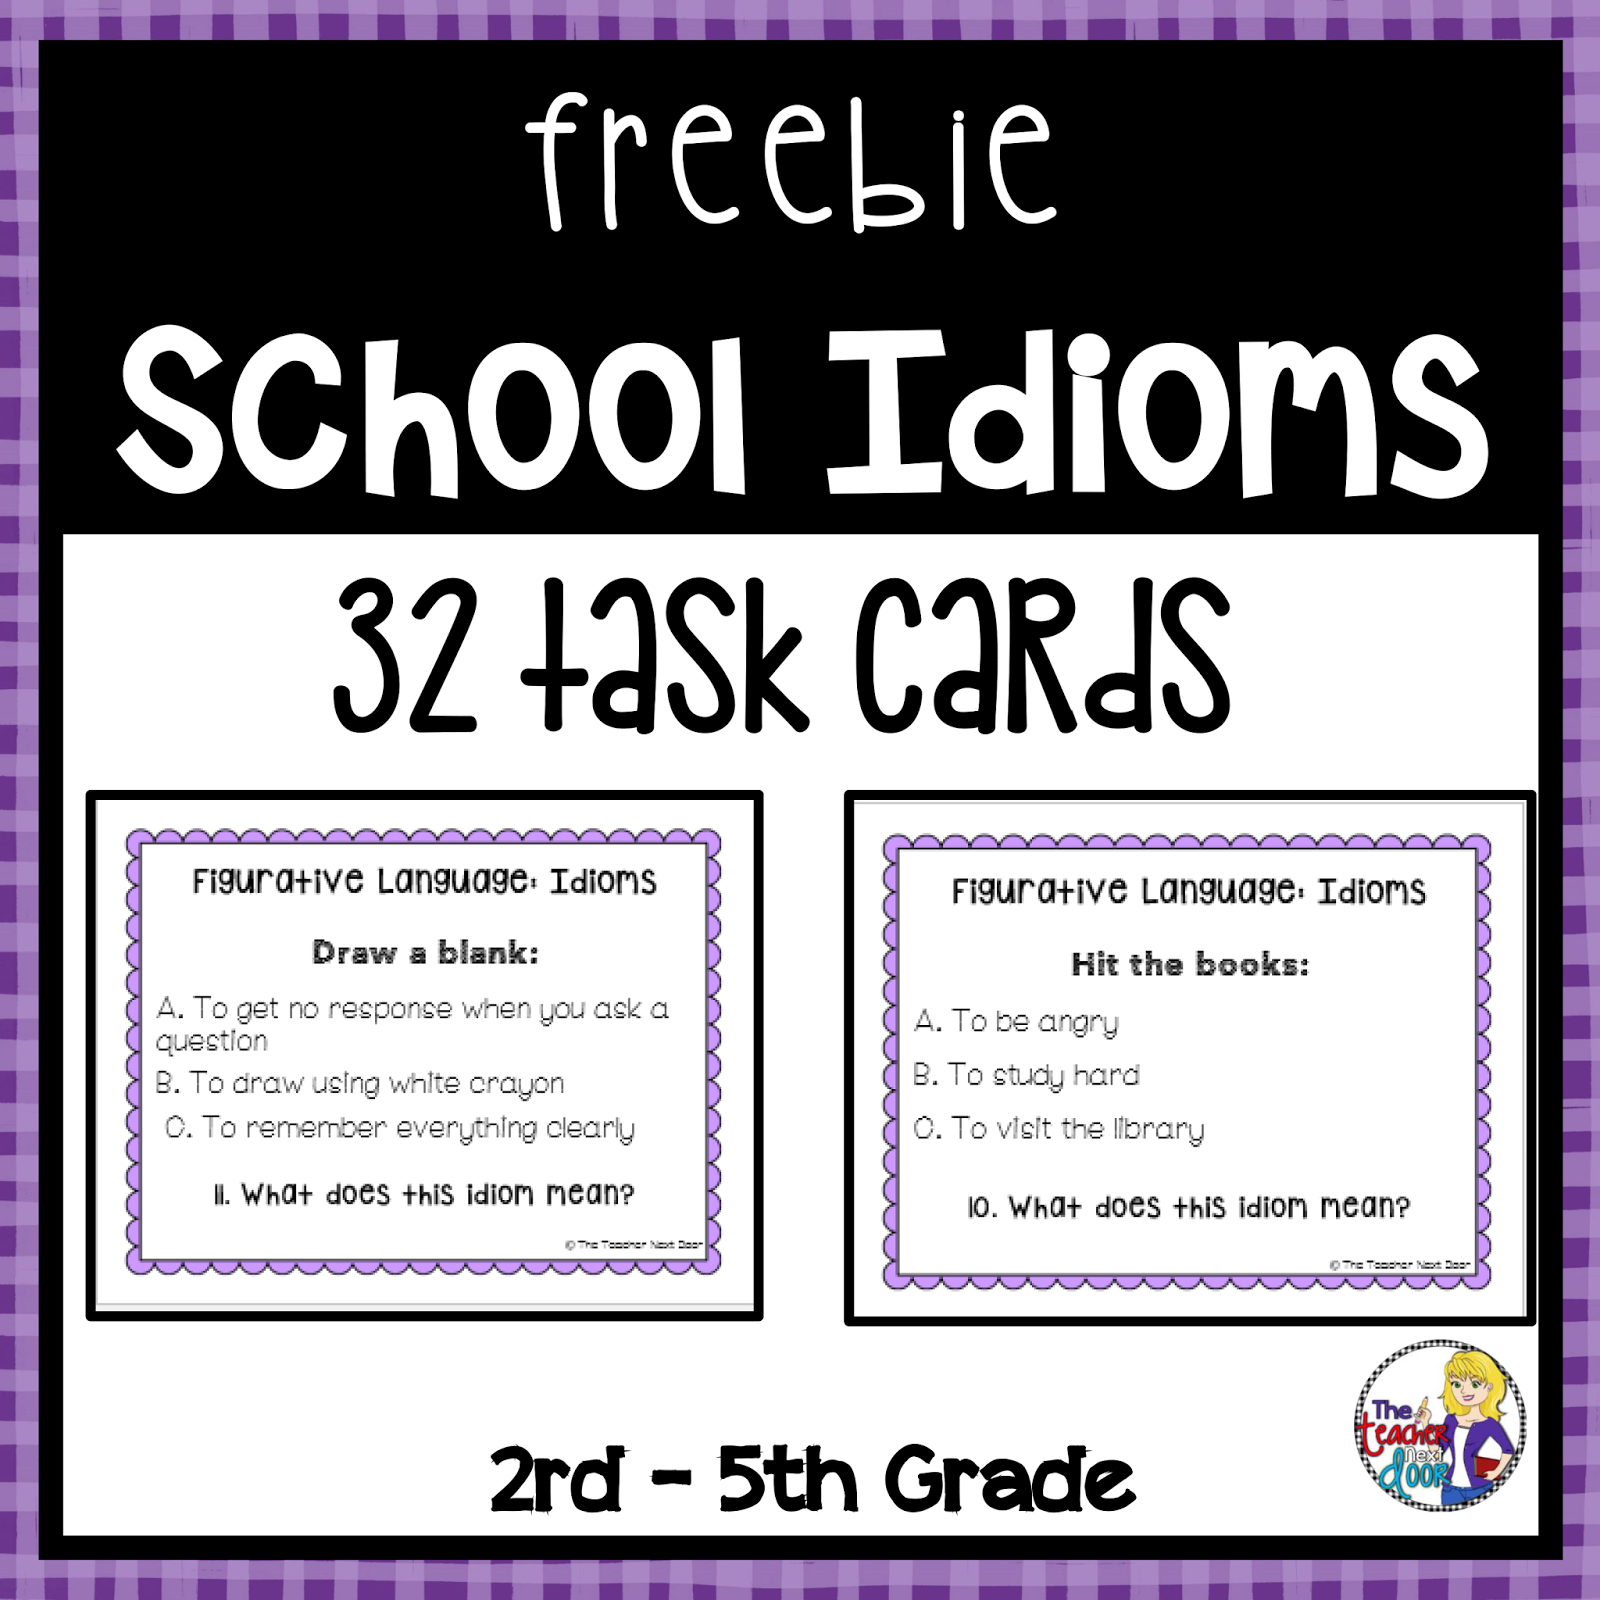 Fun Activities To Teach Idioms